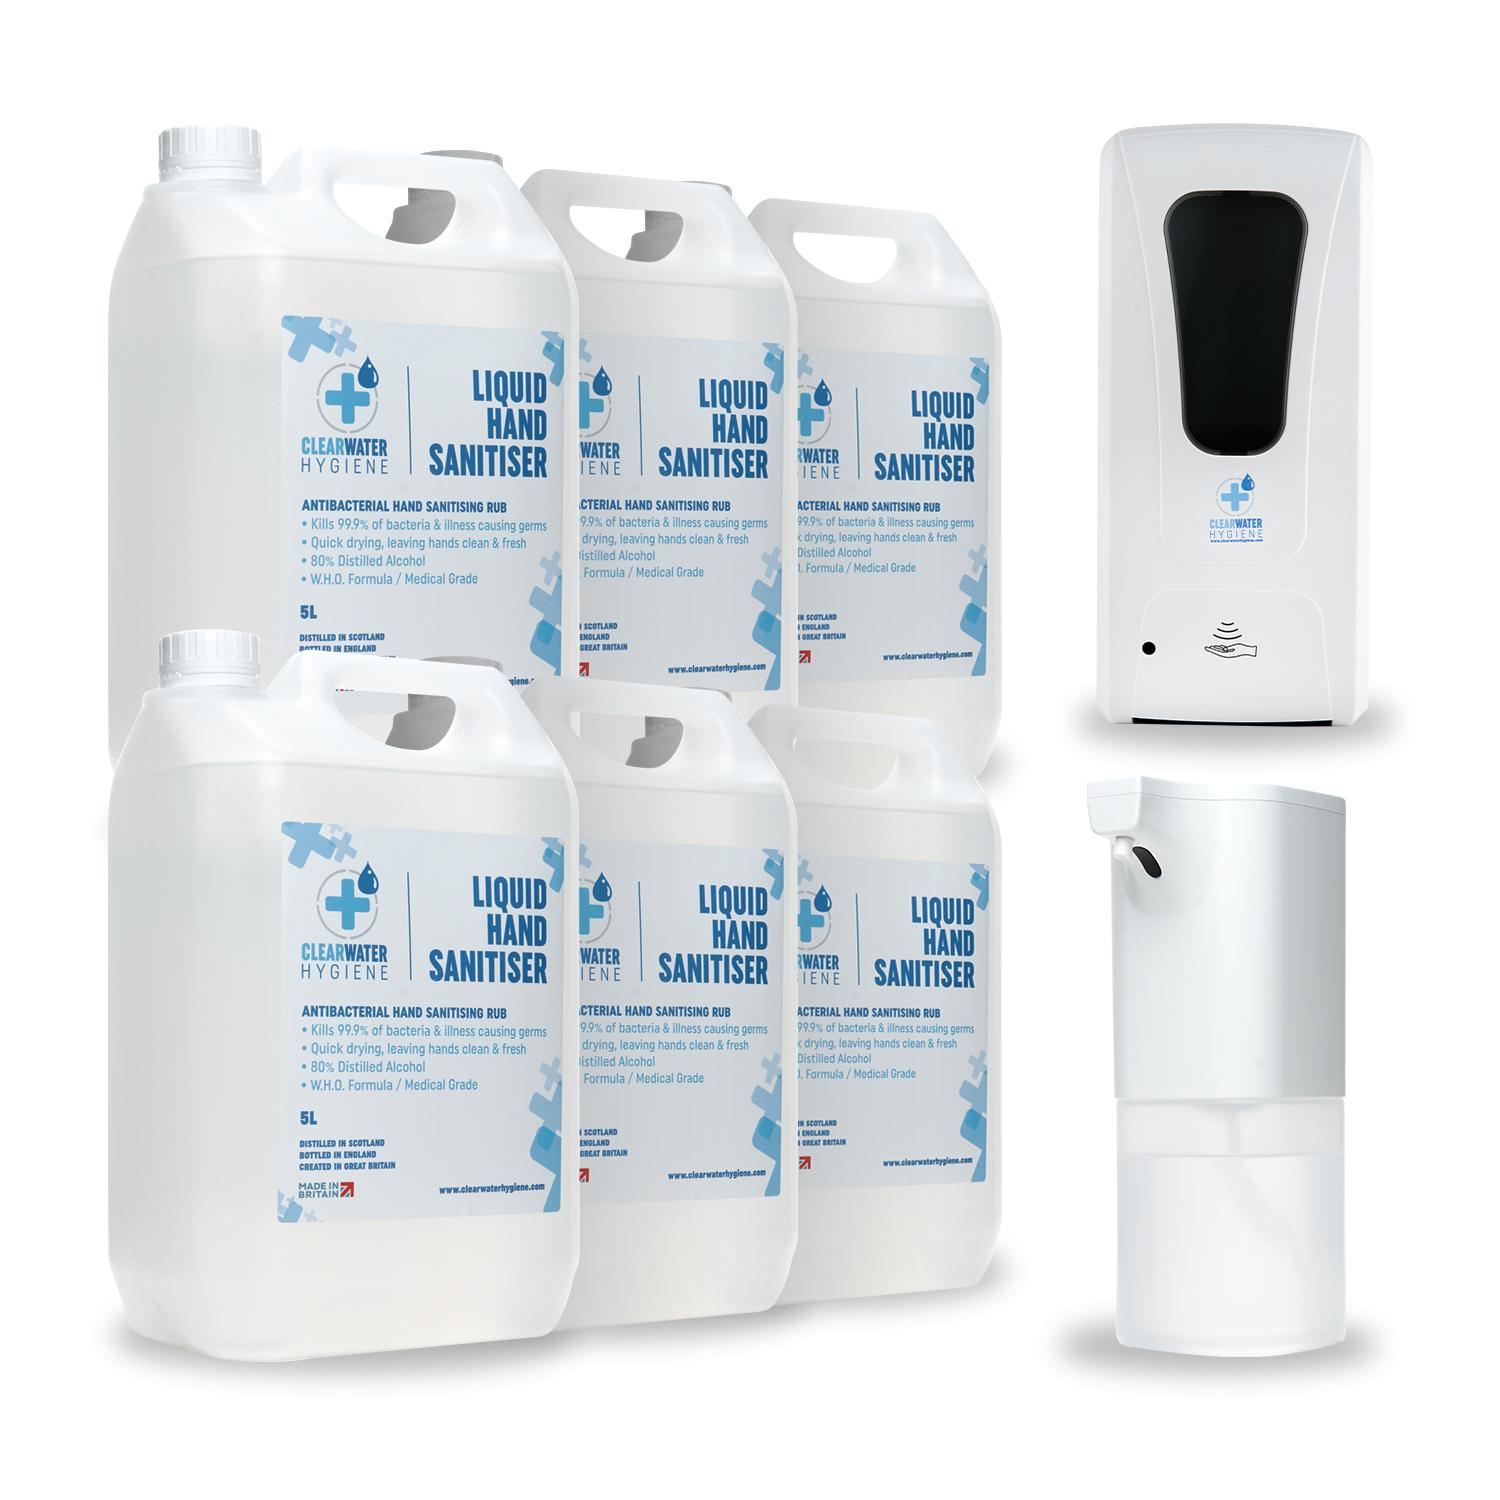 Automatic Dispenser + 30 Litre Bulk Hand Sanitiser Bundle (Certified Medical Grade / Made in the UK)